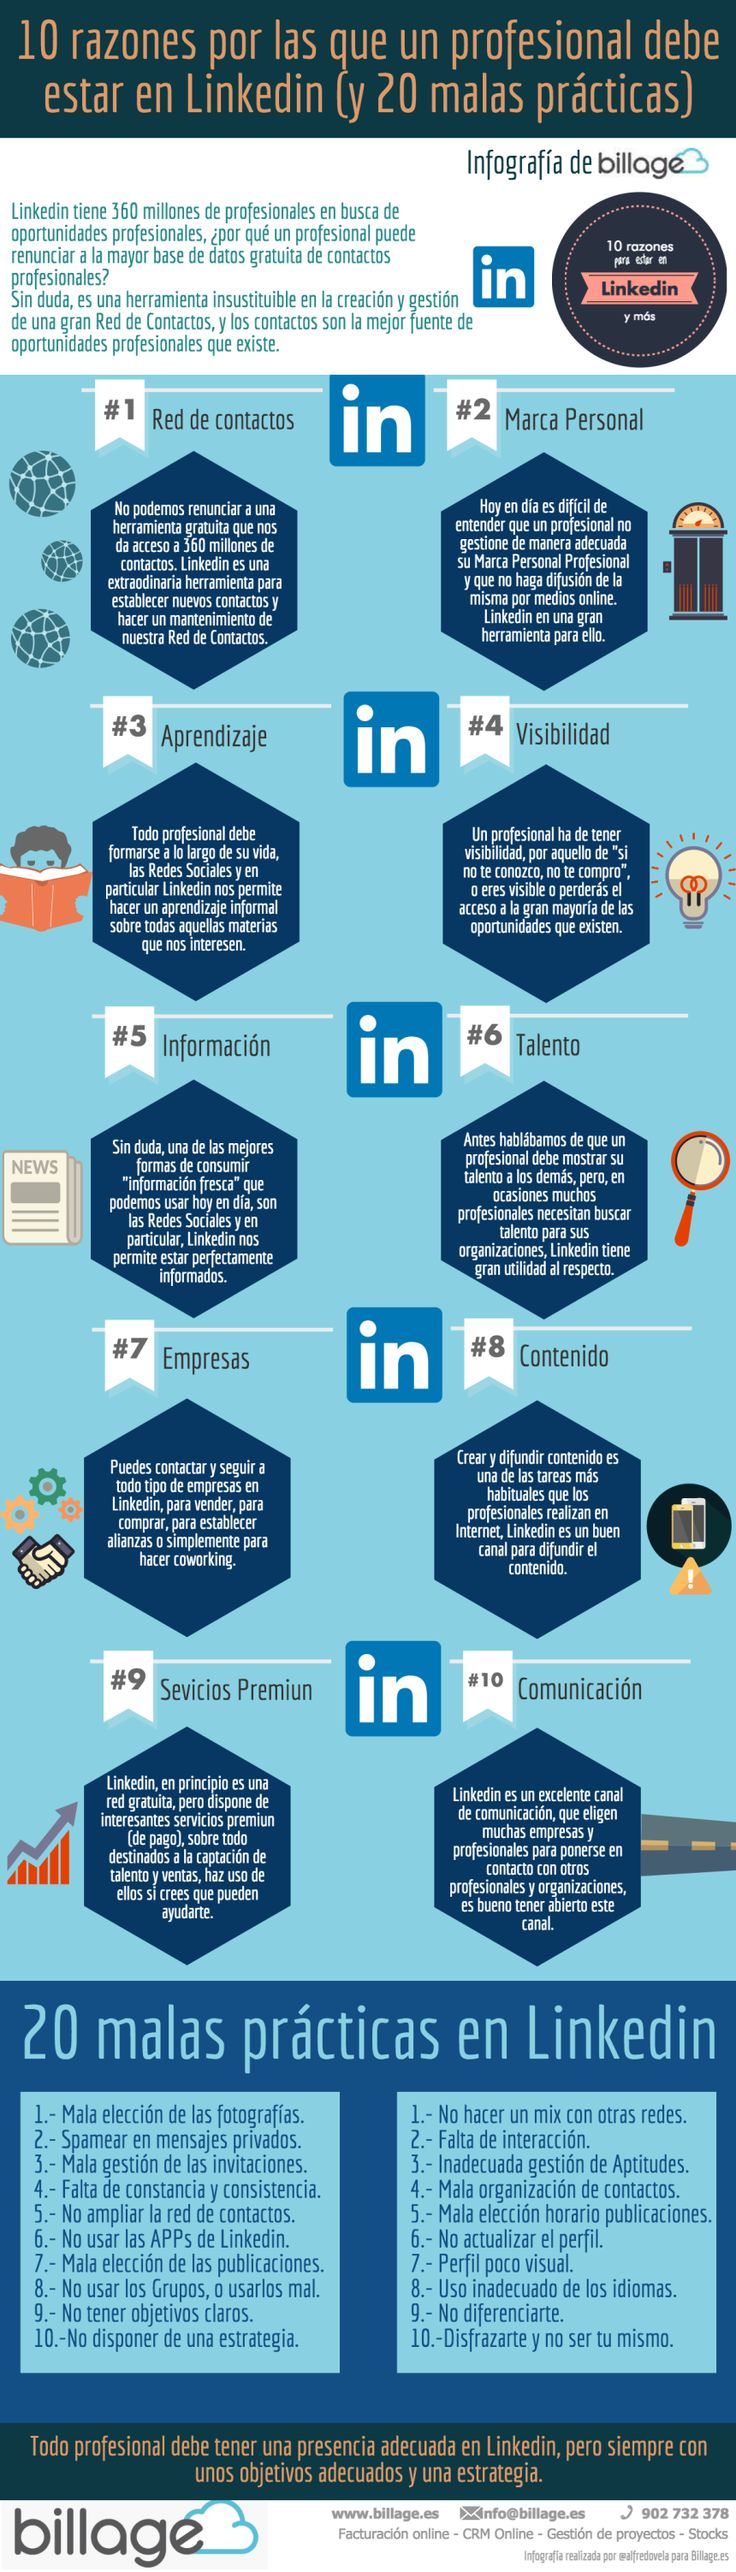 52 best Recruitment images on Pinterest | Human resources, Info ...